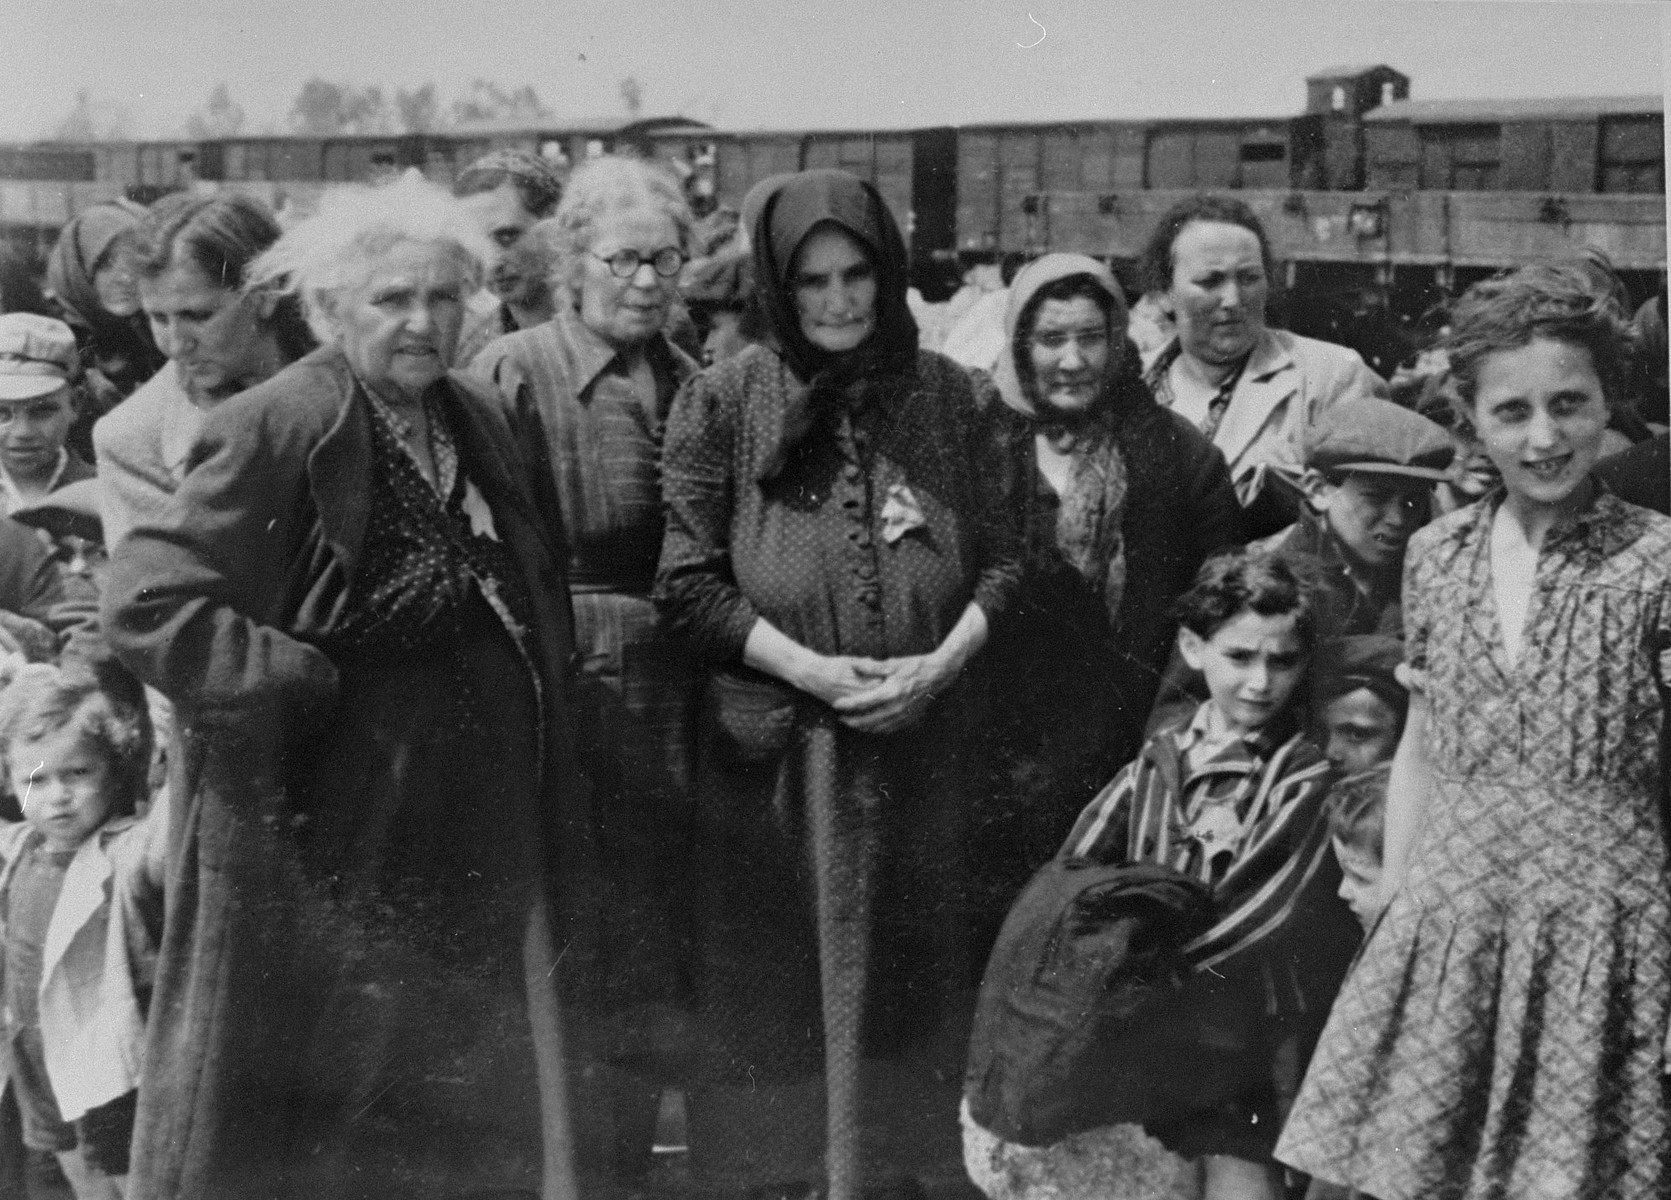 Jewish women and children from Subcarpathian Rus await selection on the ramp at Auschwitz-Birkenau.  The girl on the right has been identified as  Bella Lebovic from Tacavo.